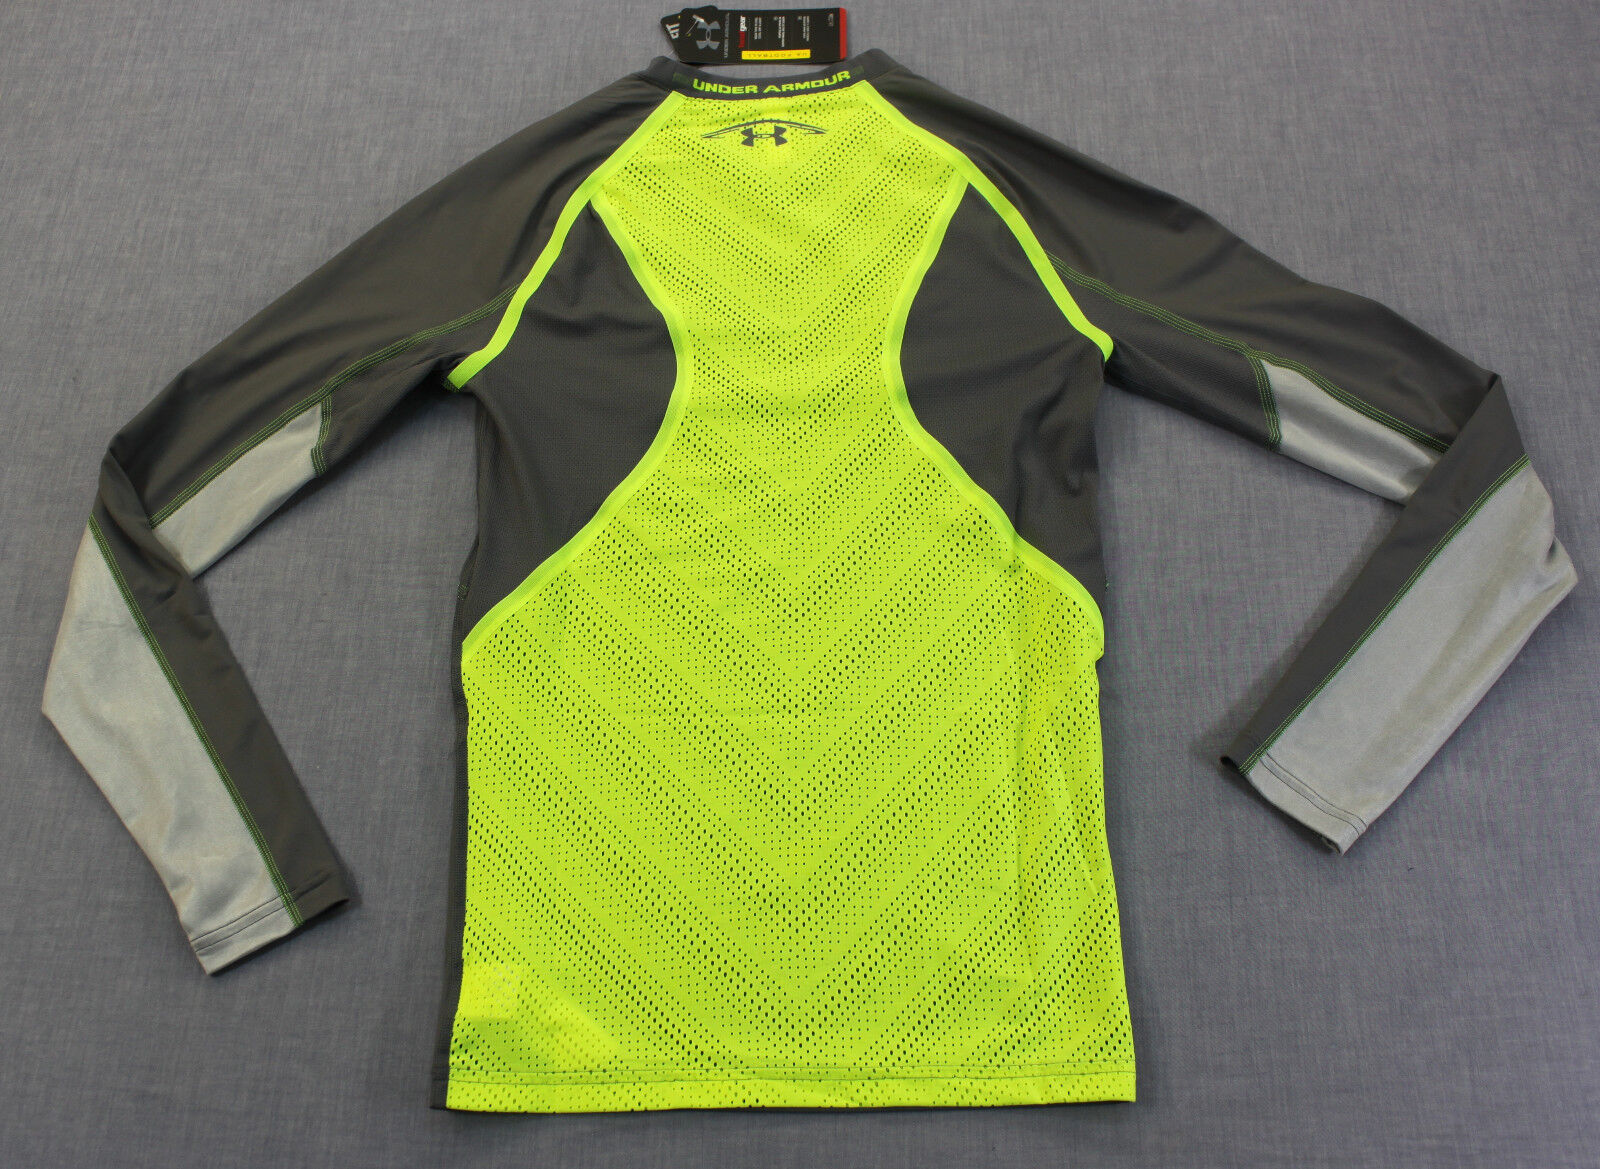 UNDER ARMOUR FOOTBALL Uomo Gris giallo ARMY of Compression 11 Compression of LS SHIRT NWT M  80 3983f7